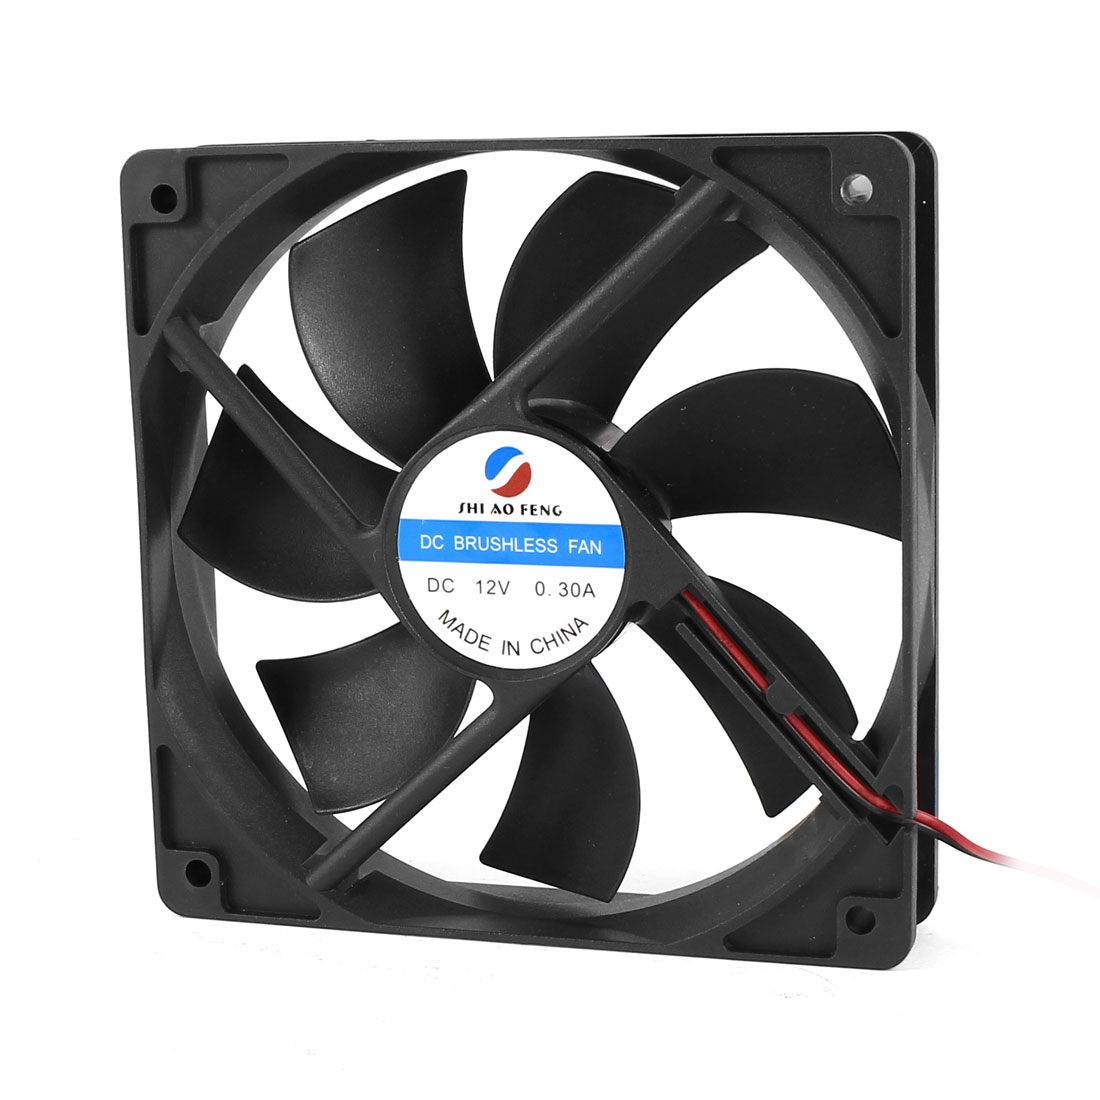 DC 12V 0.30A 120mm Brushless Cooling Fan Black for Computer Case CPU Cooler